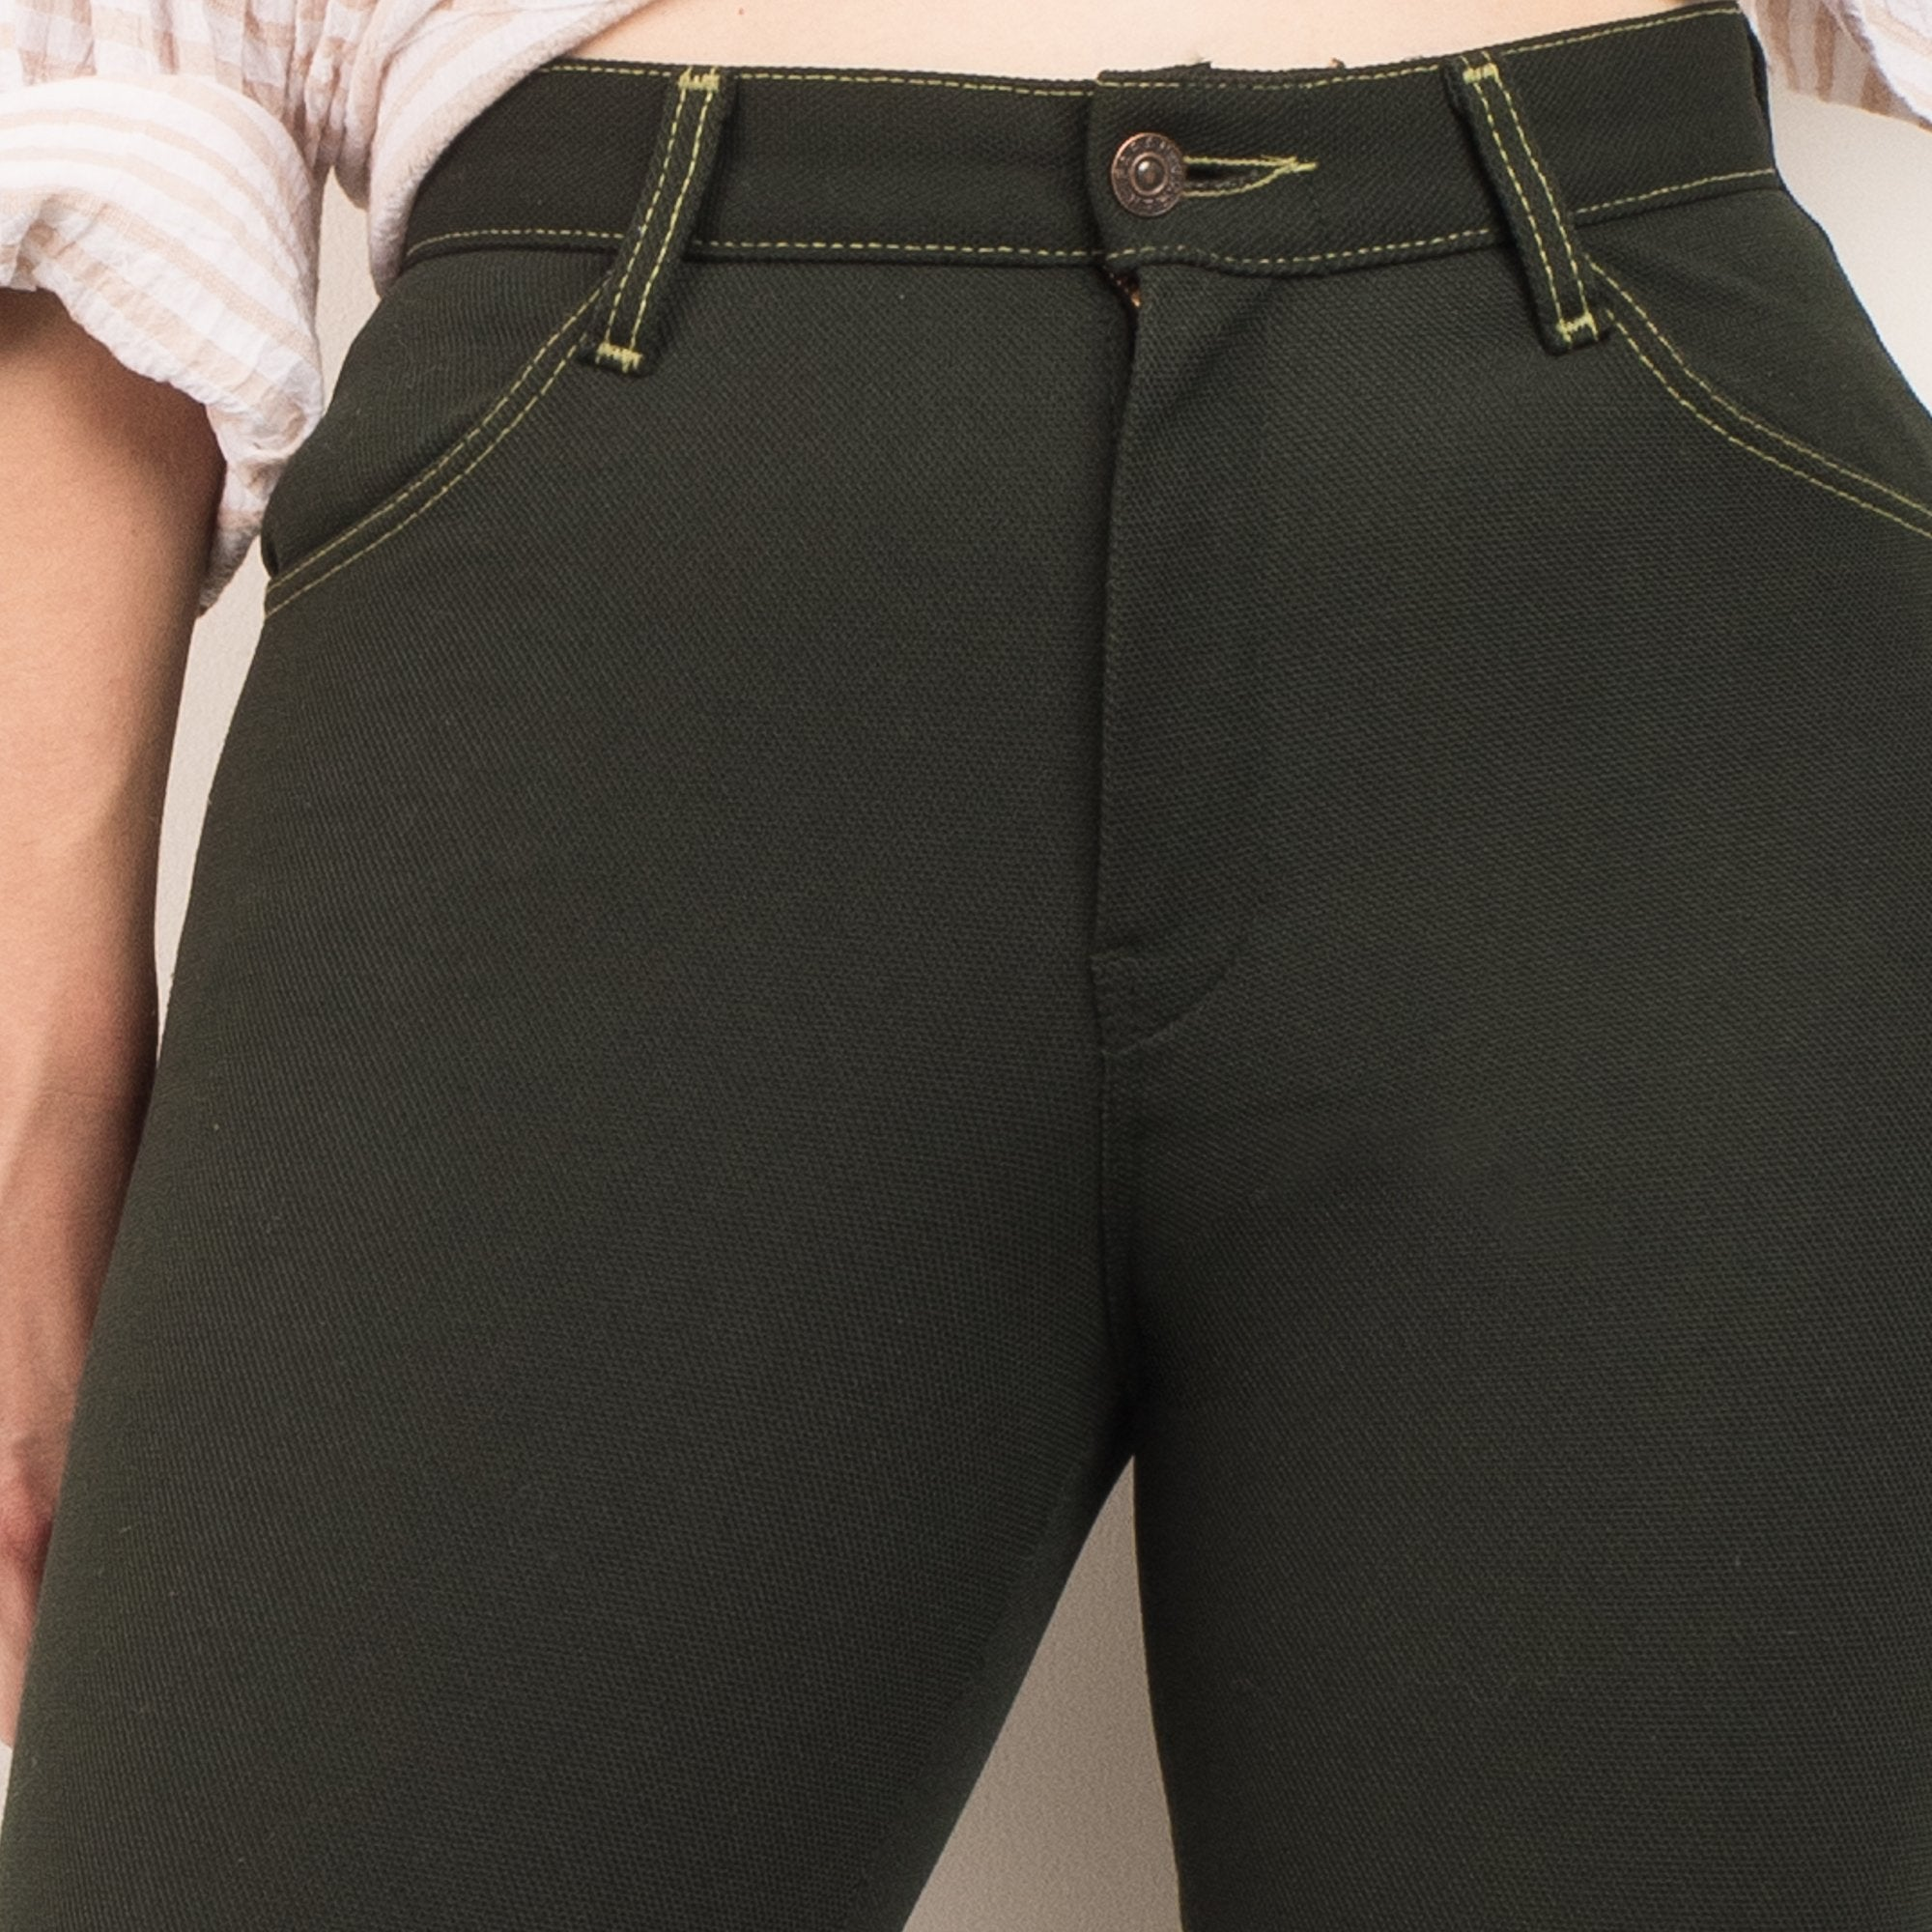 Vintage Forest Green 70s Pants / S - Closed Caption